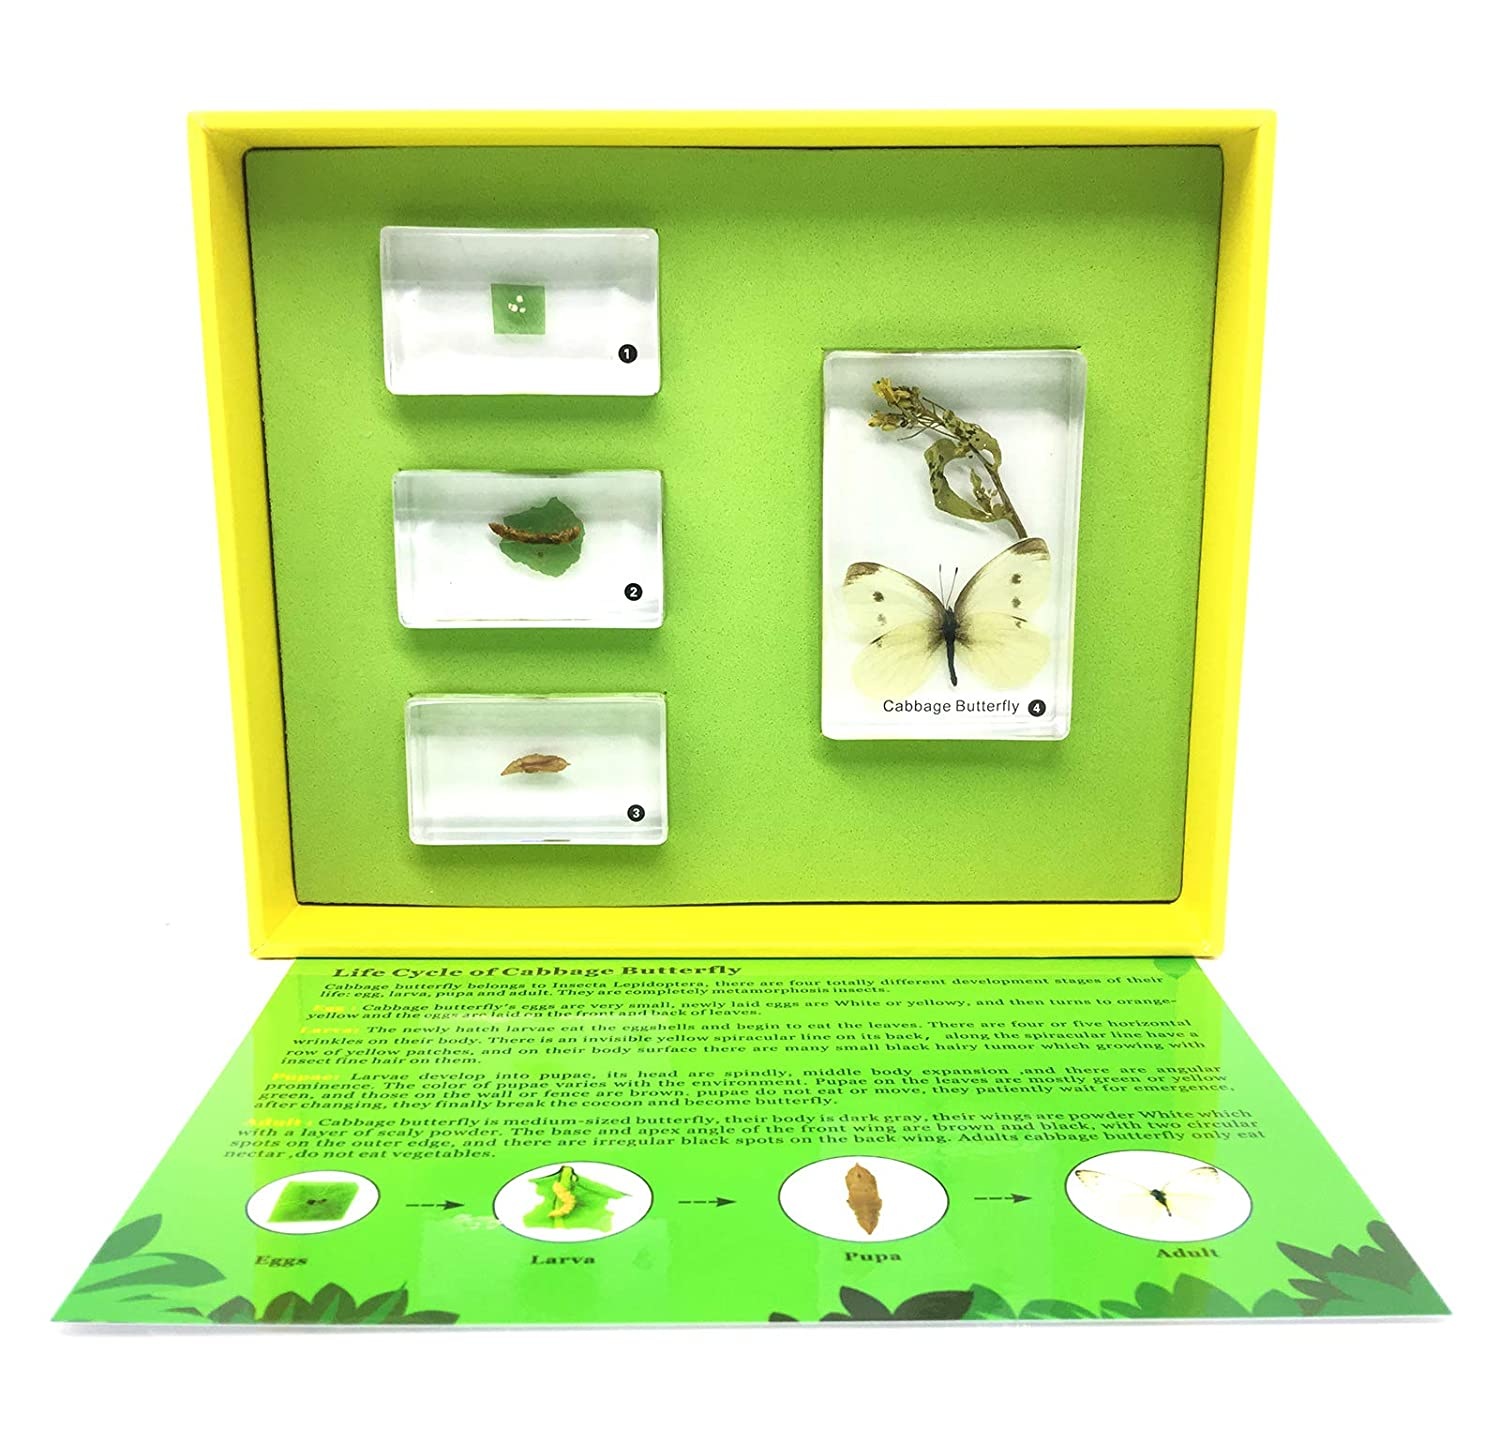 Lifecycle of a Butterfly Science Classroom Specimens for Science Education